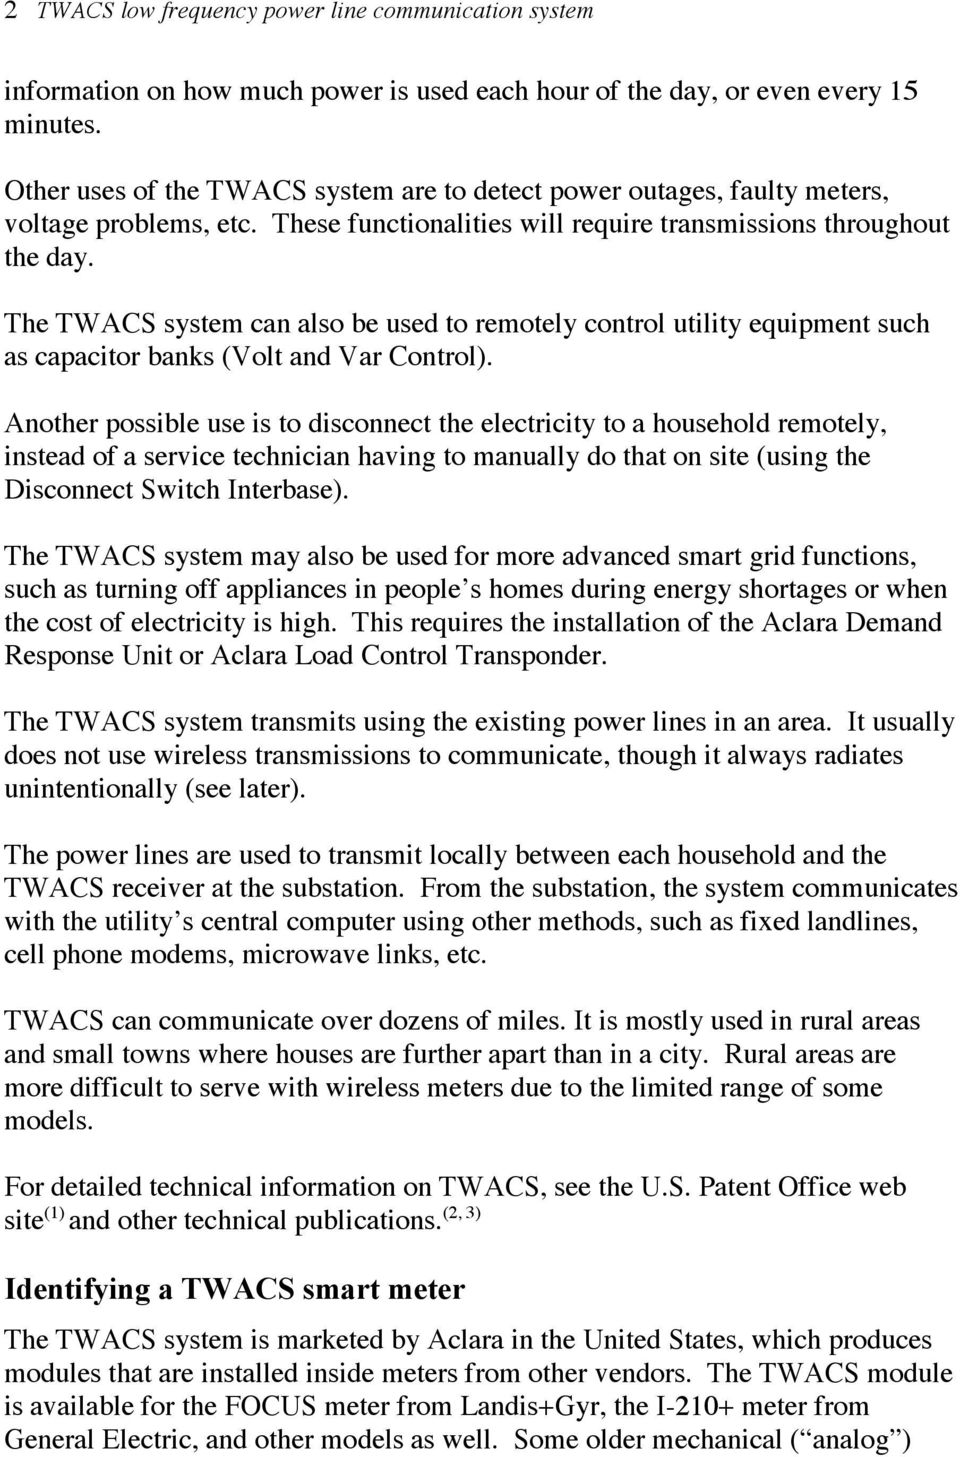 TWACS smart meters problematic to public health and safety - PDF